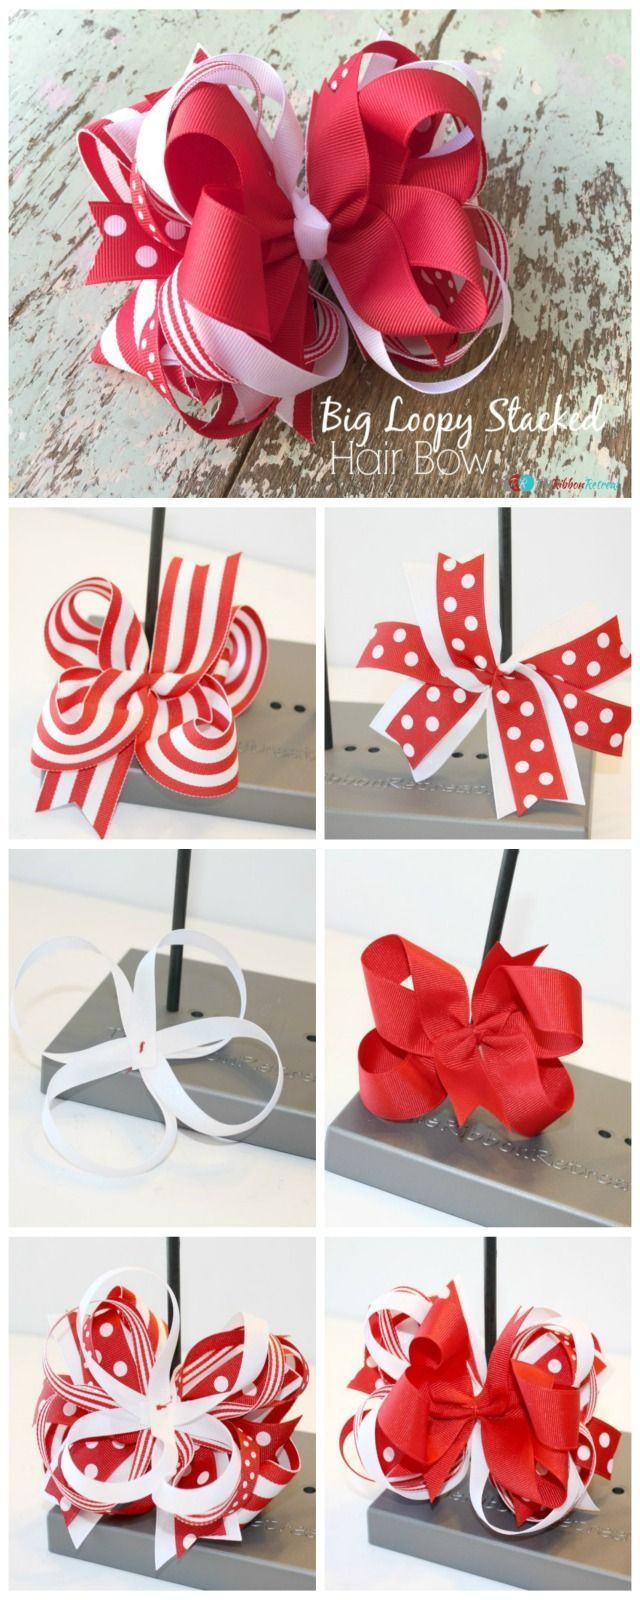 How To Make Hair Bows for Babies #hairbows